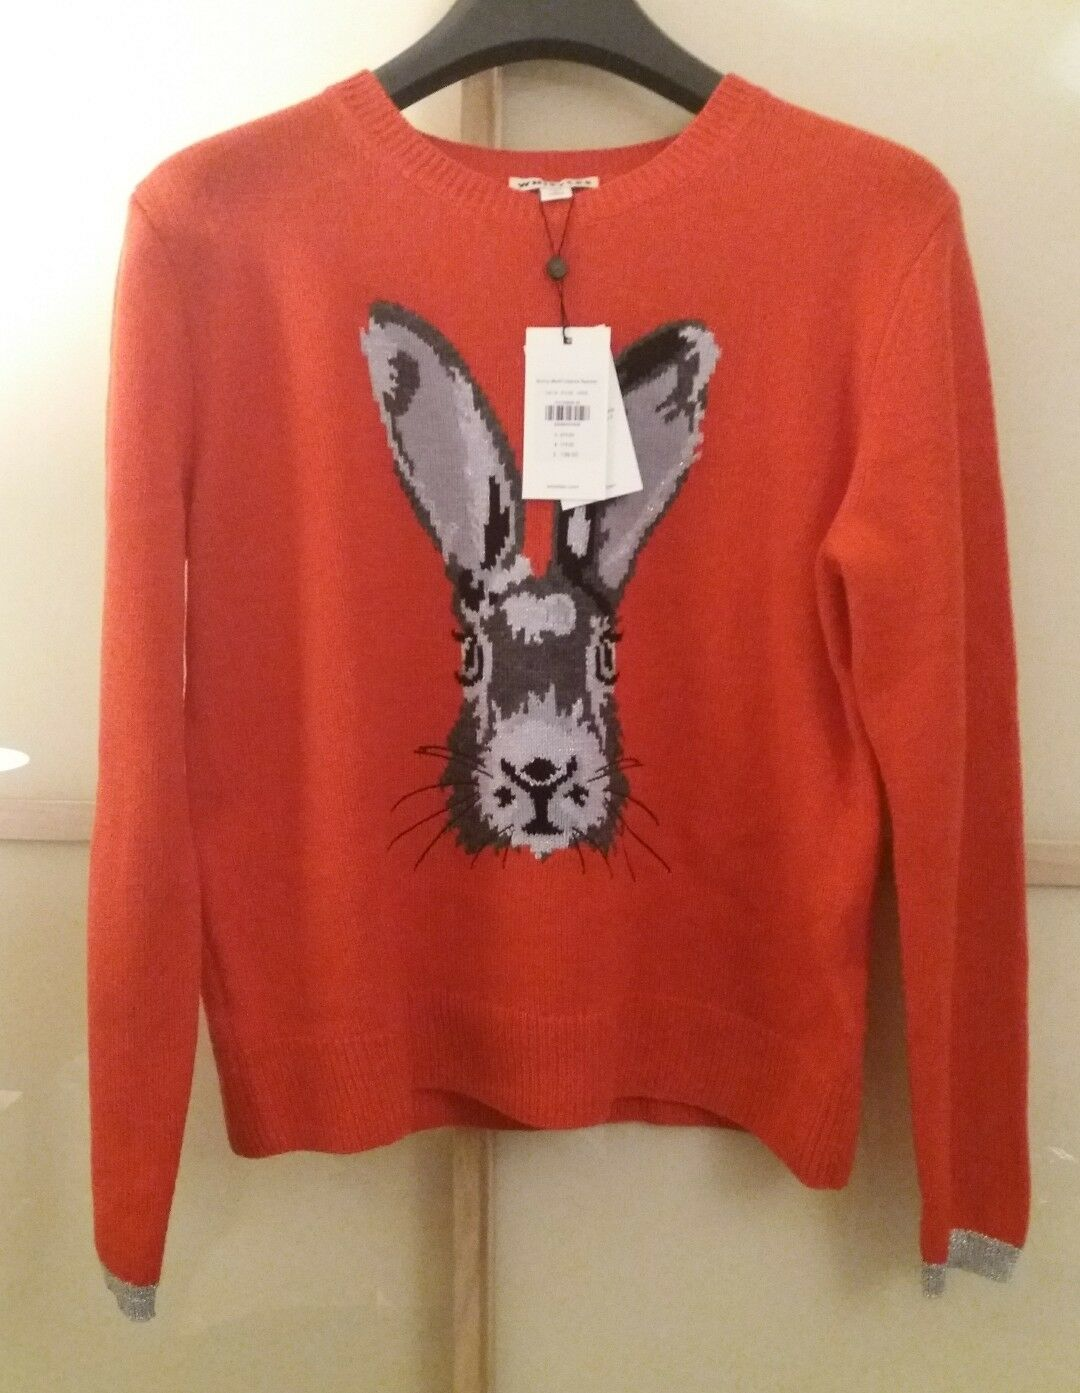 BNWT Whistles Bunny Motif Intarsia Wool Jumper Sweater UK8 10 Red rrp